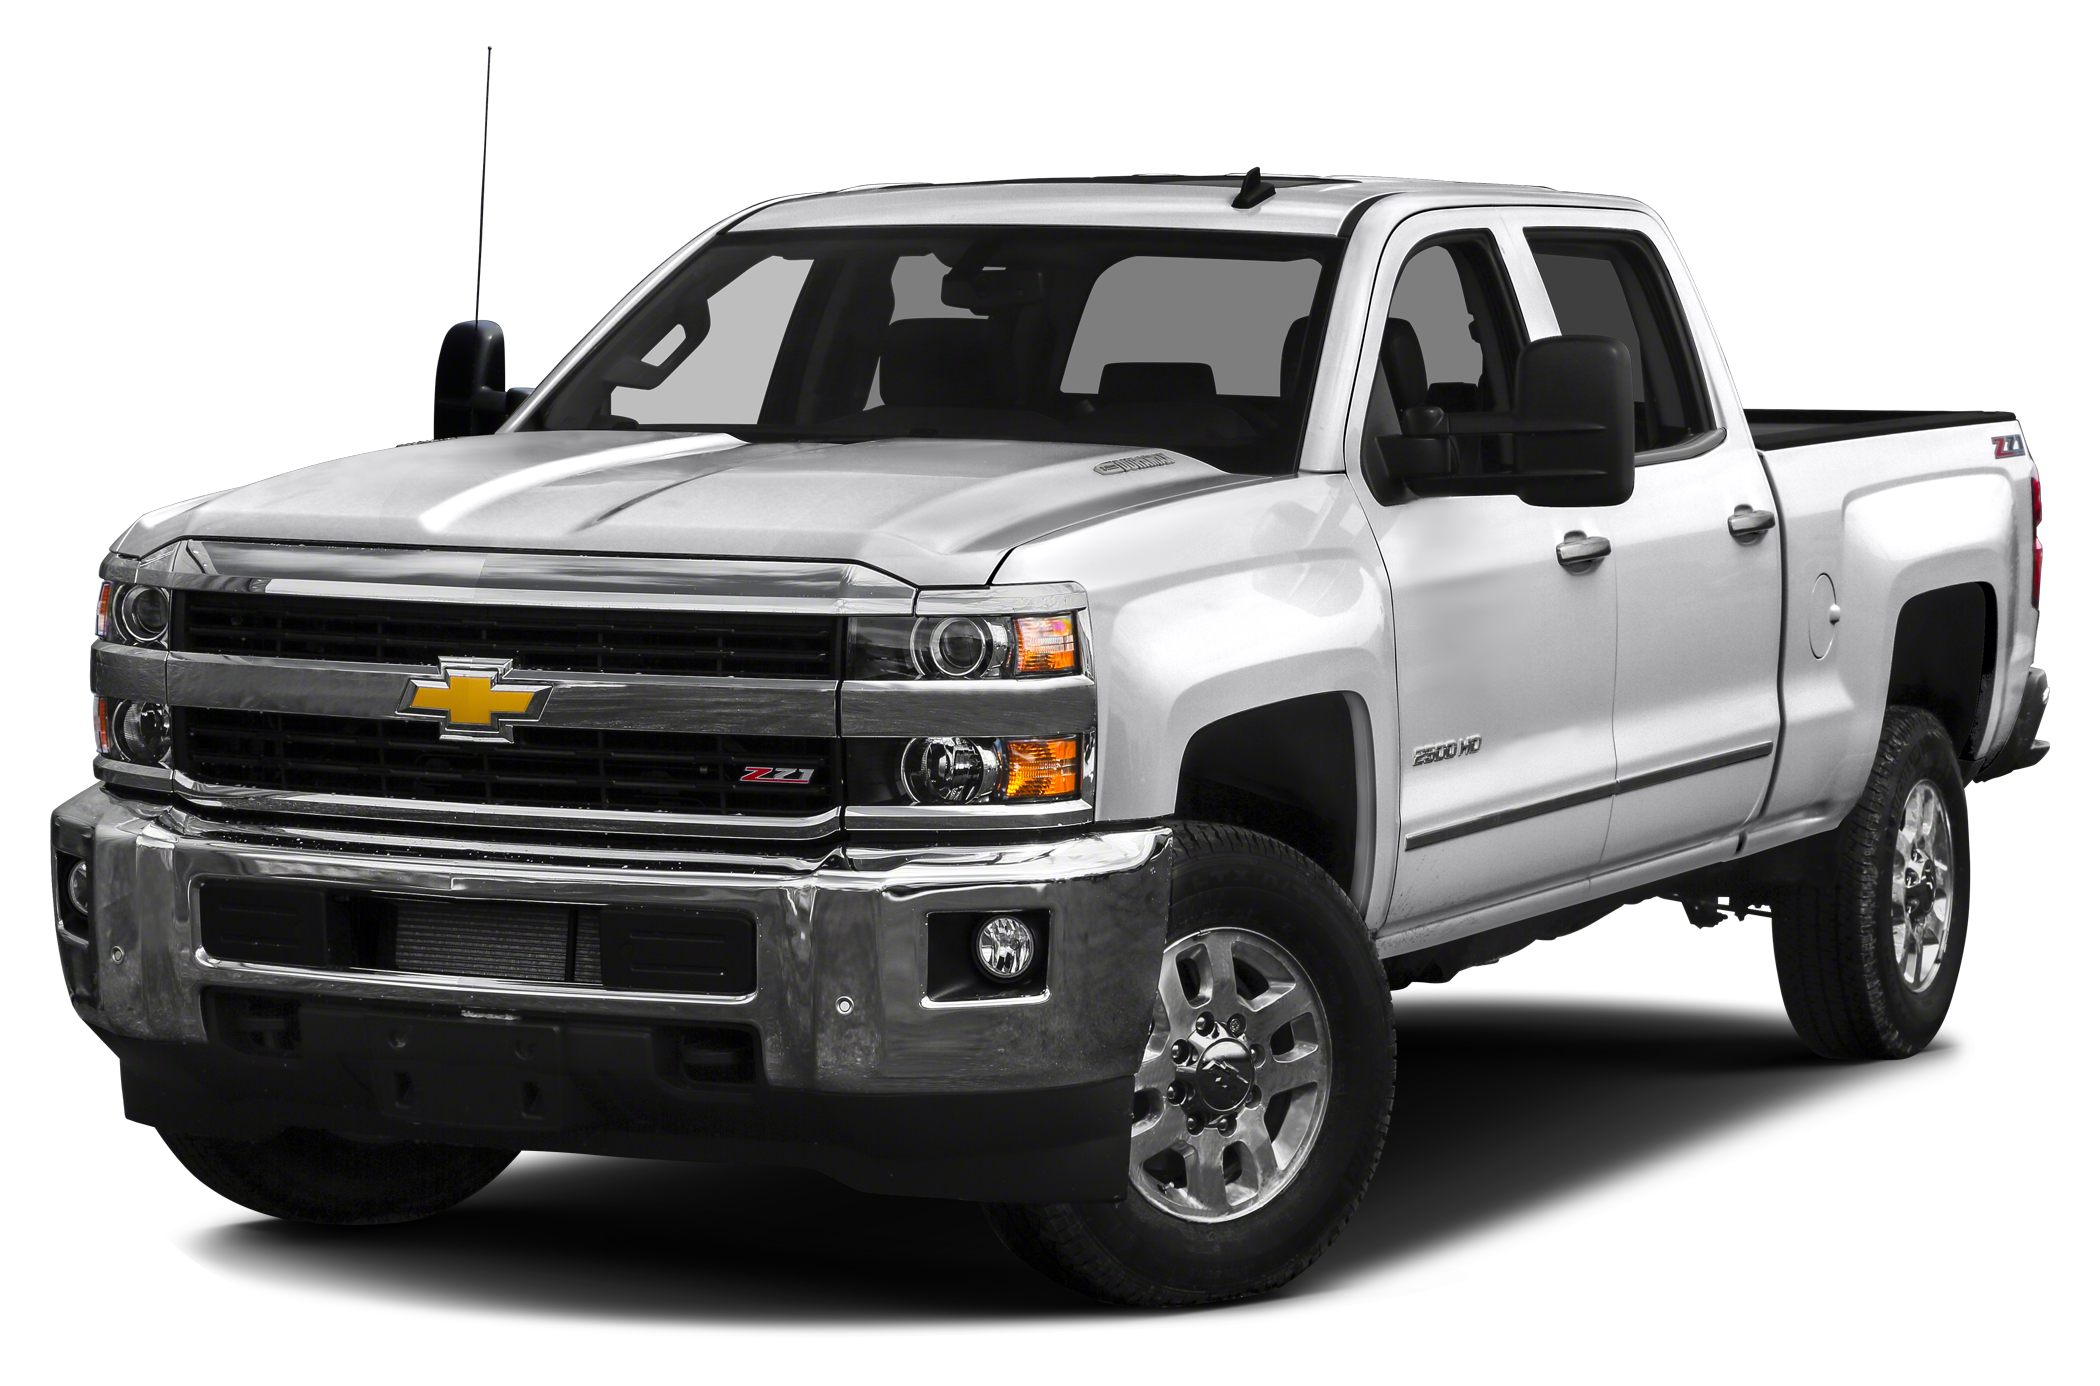 2016 chevrolet silverado 2500hd styles features highlights. Black Bedroom Furniture Sets. Home Design Ideas